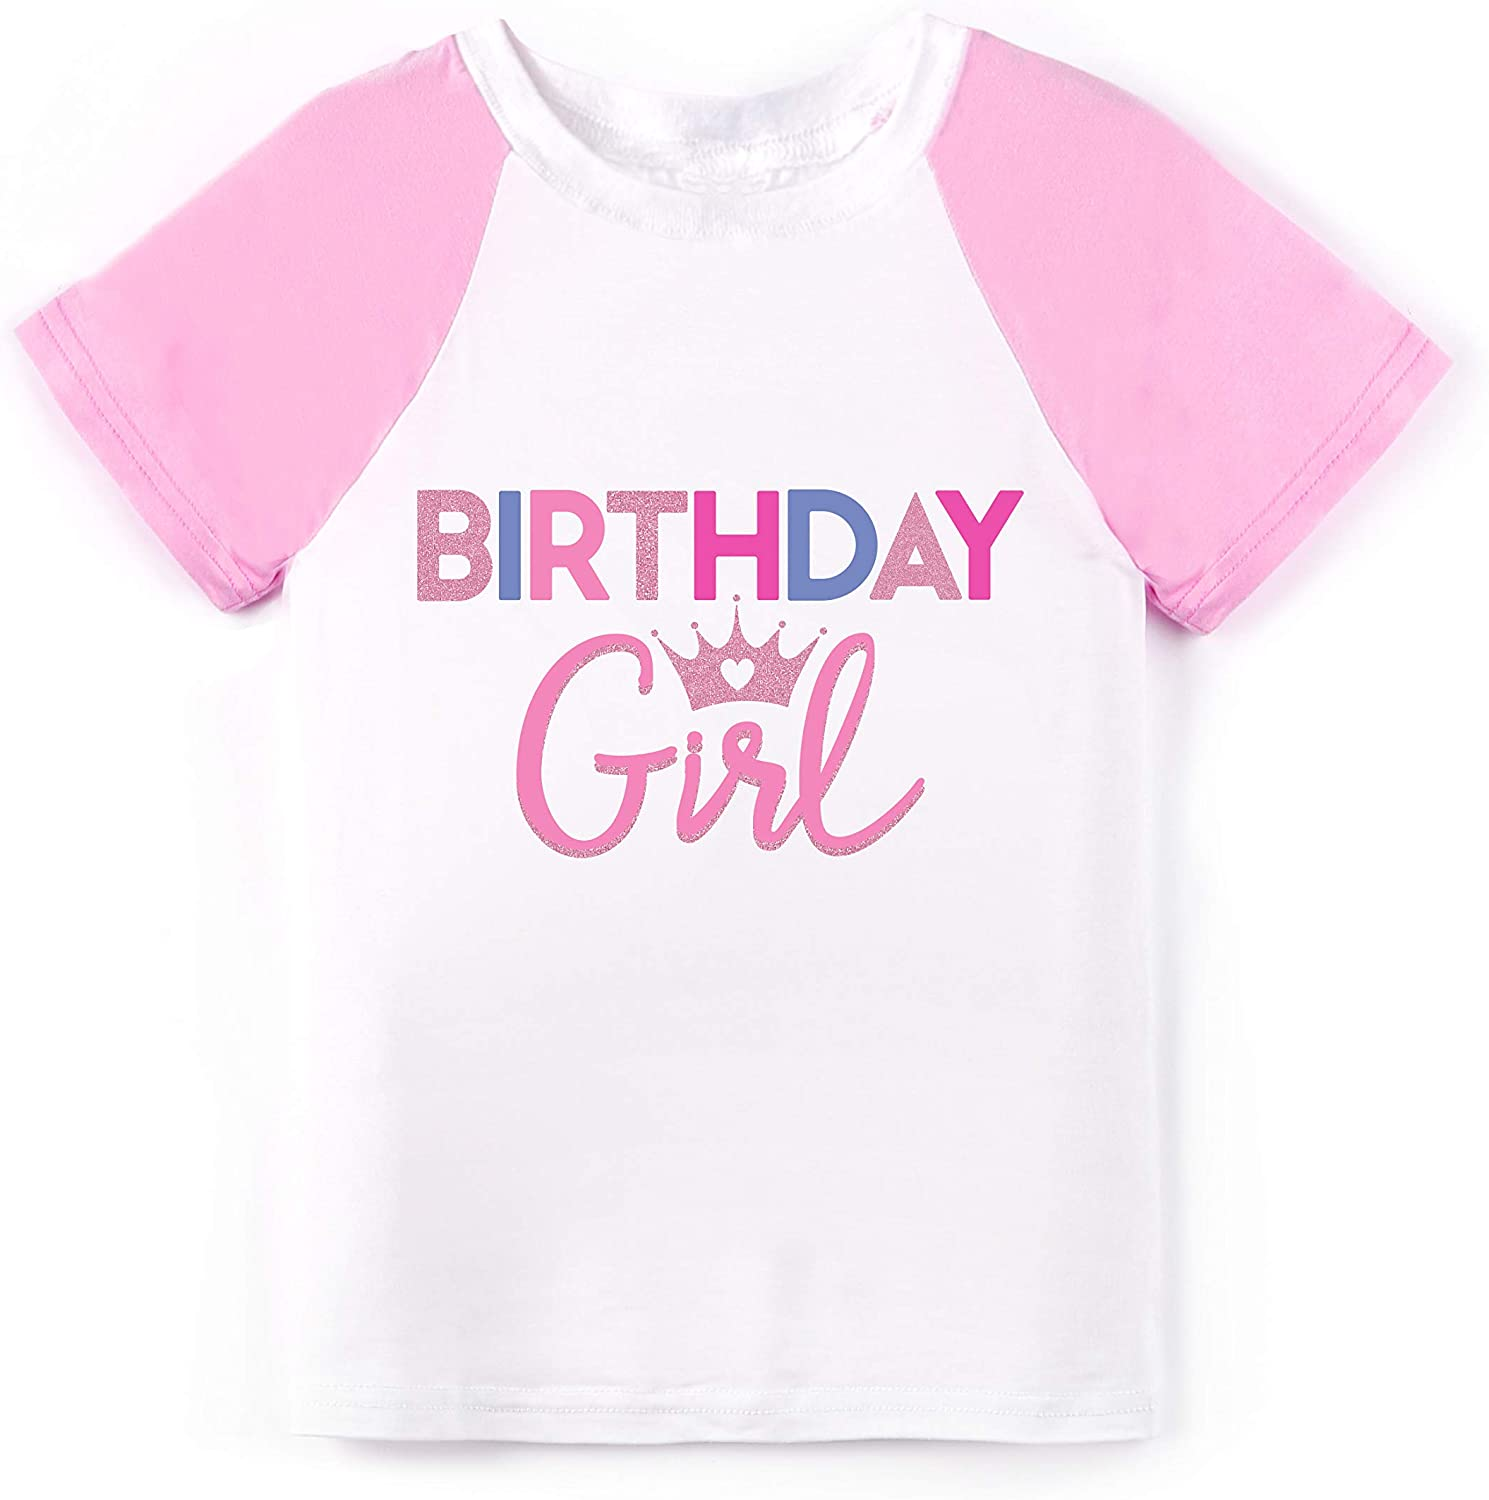 Wild and Happy Birthday Girl Princess Tshirt for Kids Party Shirt Ultra Soft Tees